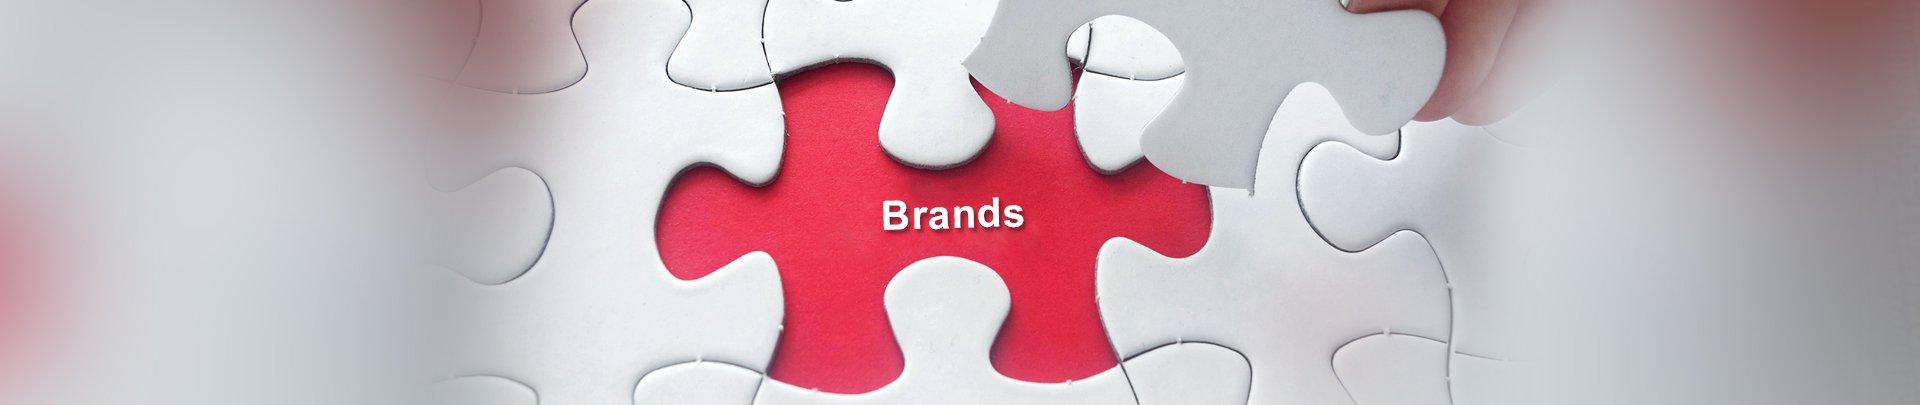 toptopdeal-brand-banner-1